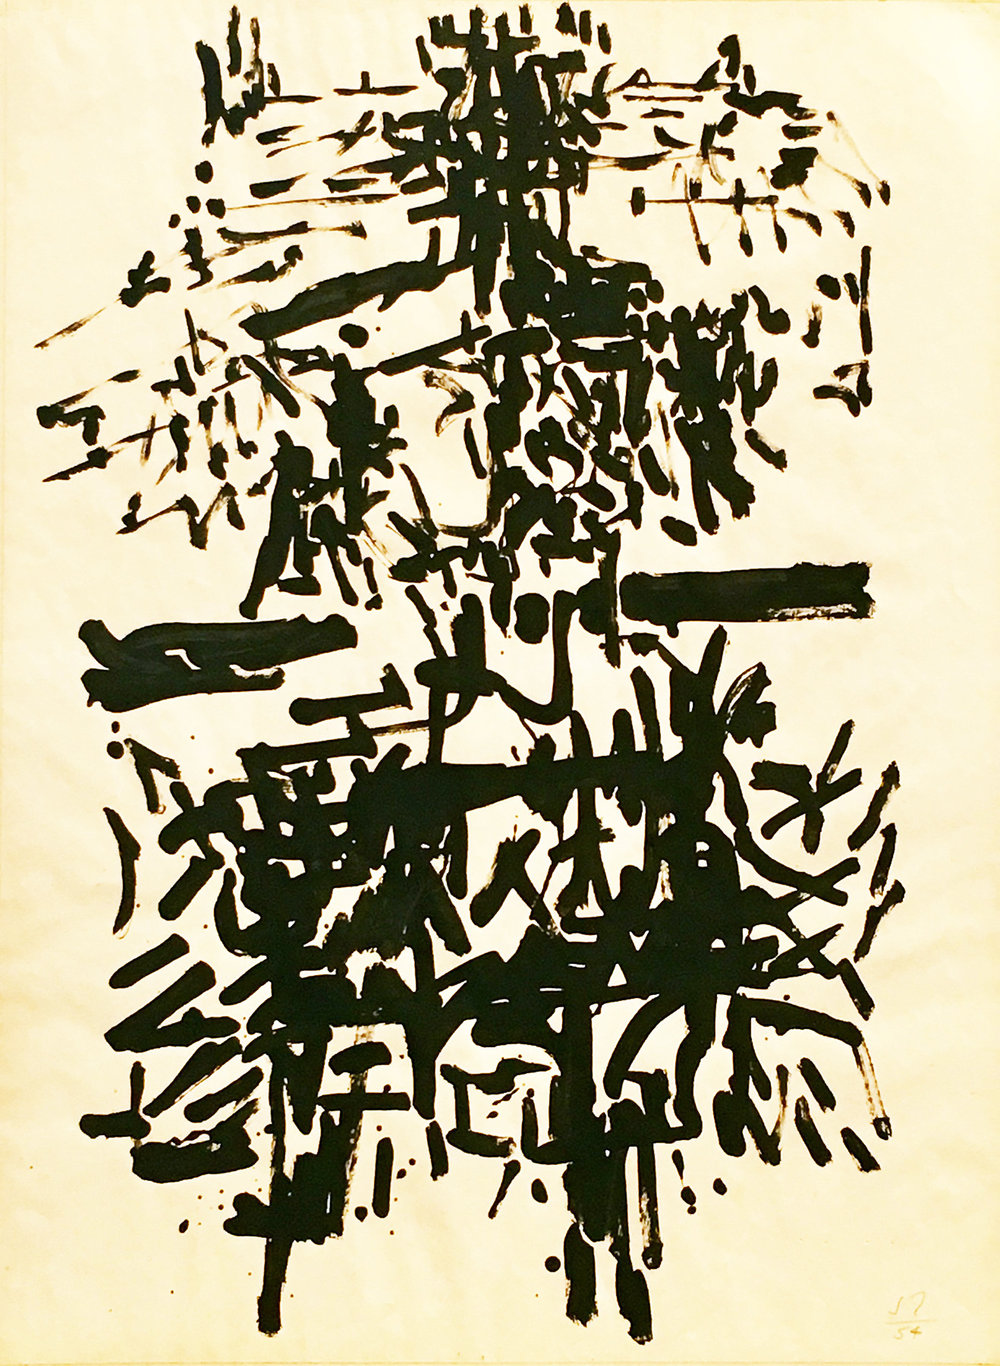 Abstract drawing of black brushstrokes on paper